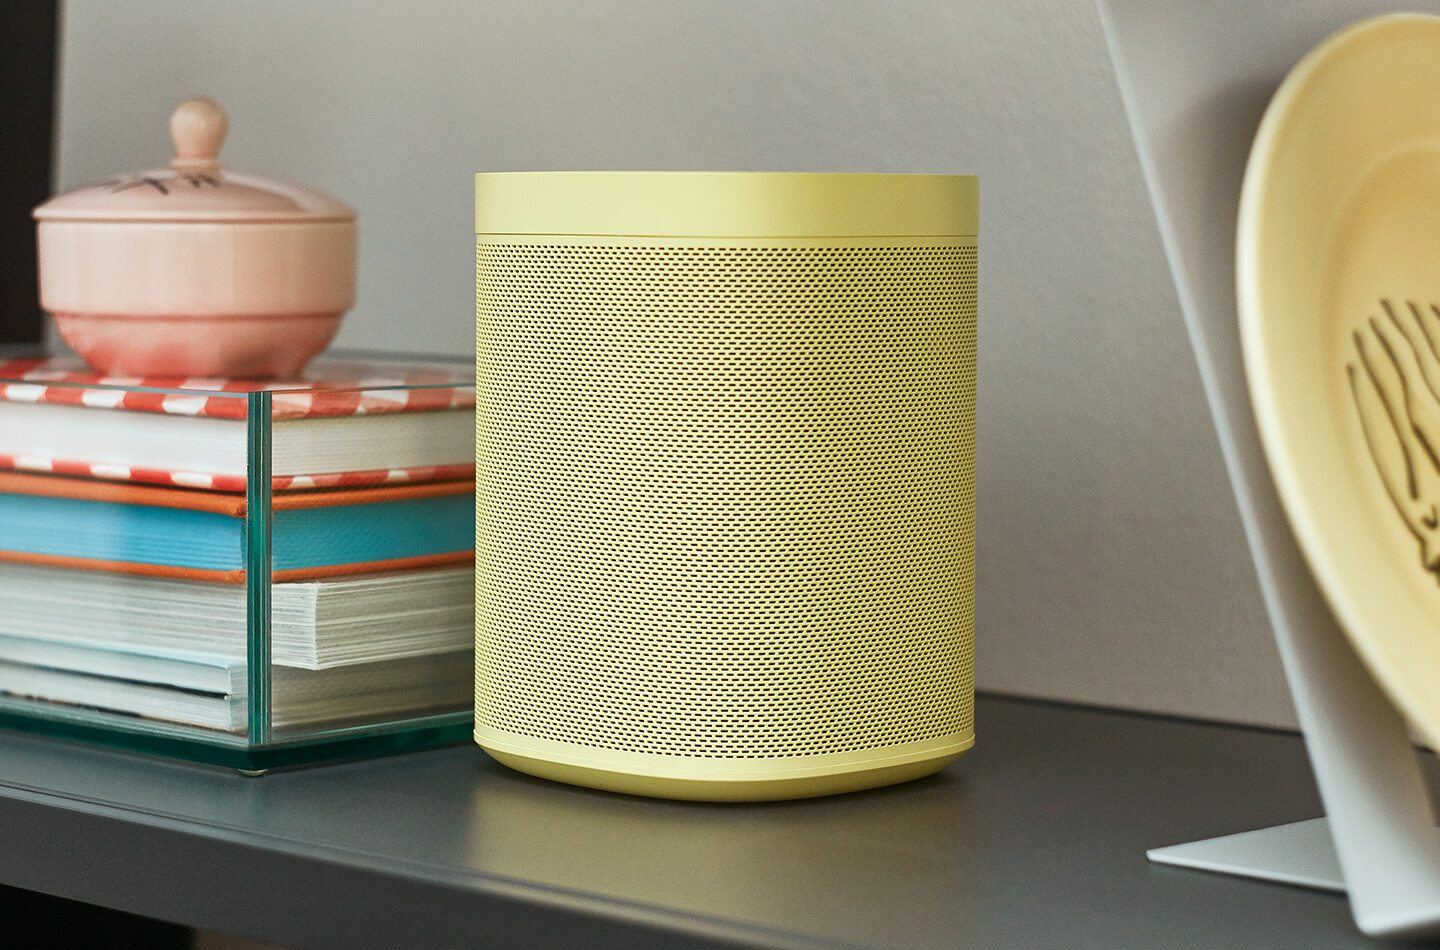 New Colors of the Sonos One Smart Speaker Arrive in September